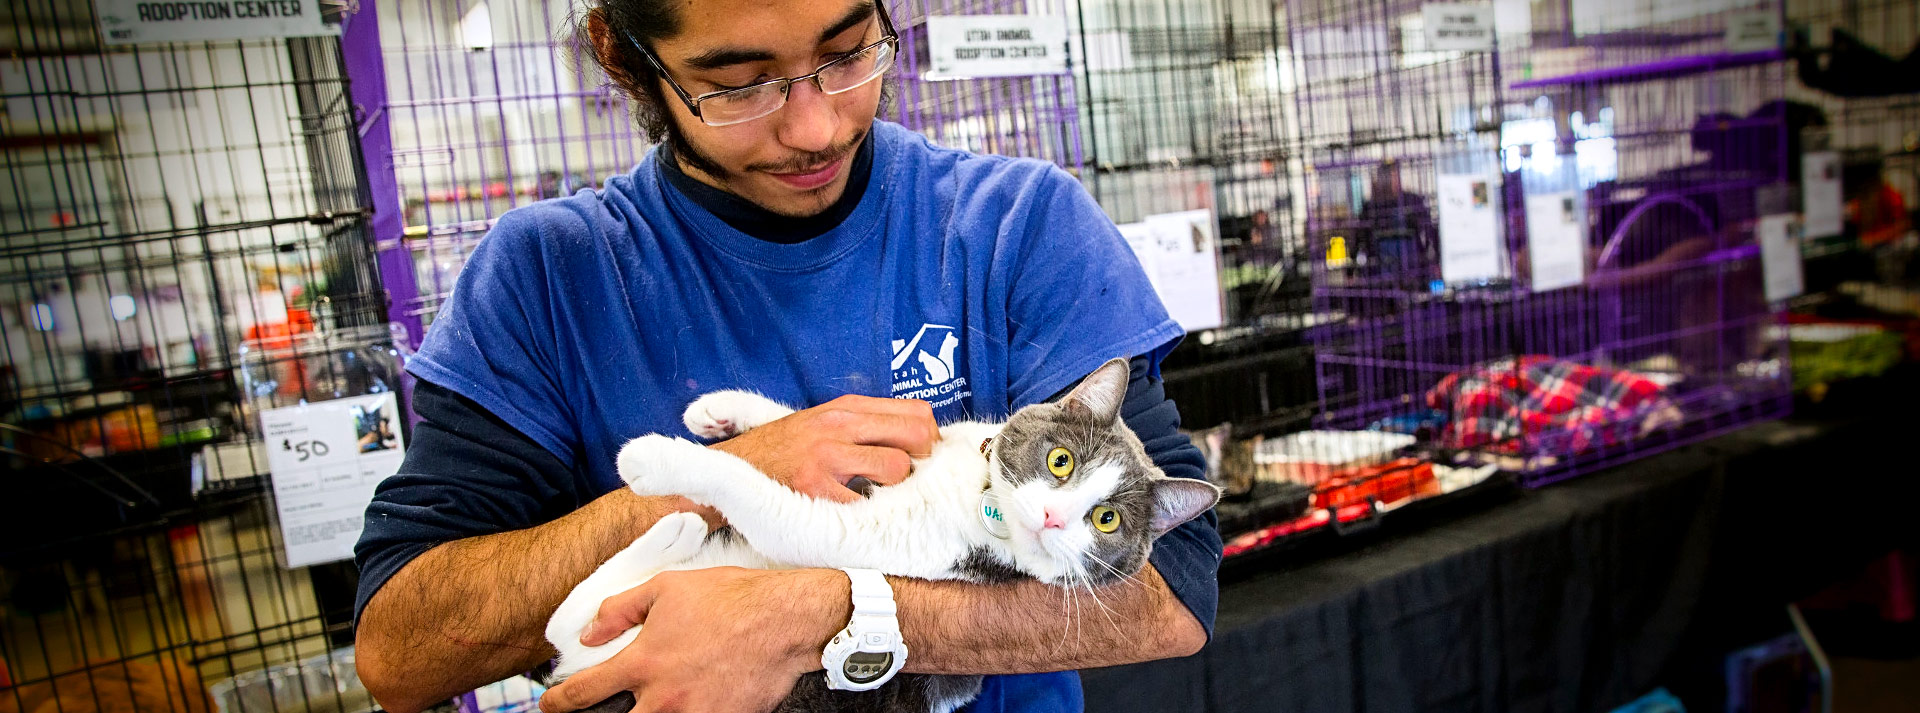 Man in blue shirt cradling white and gray kitten in his arms